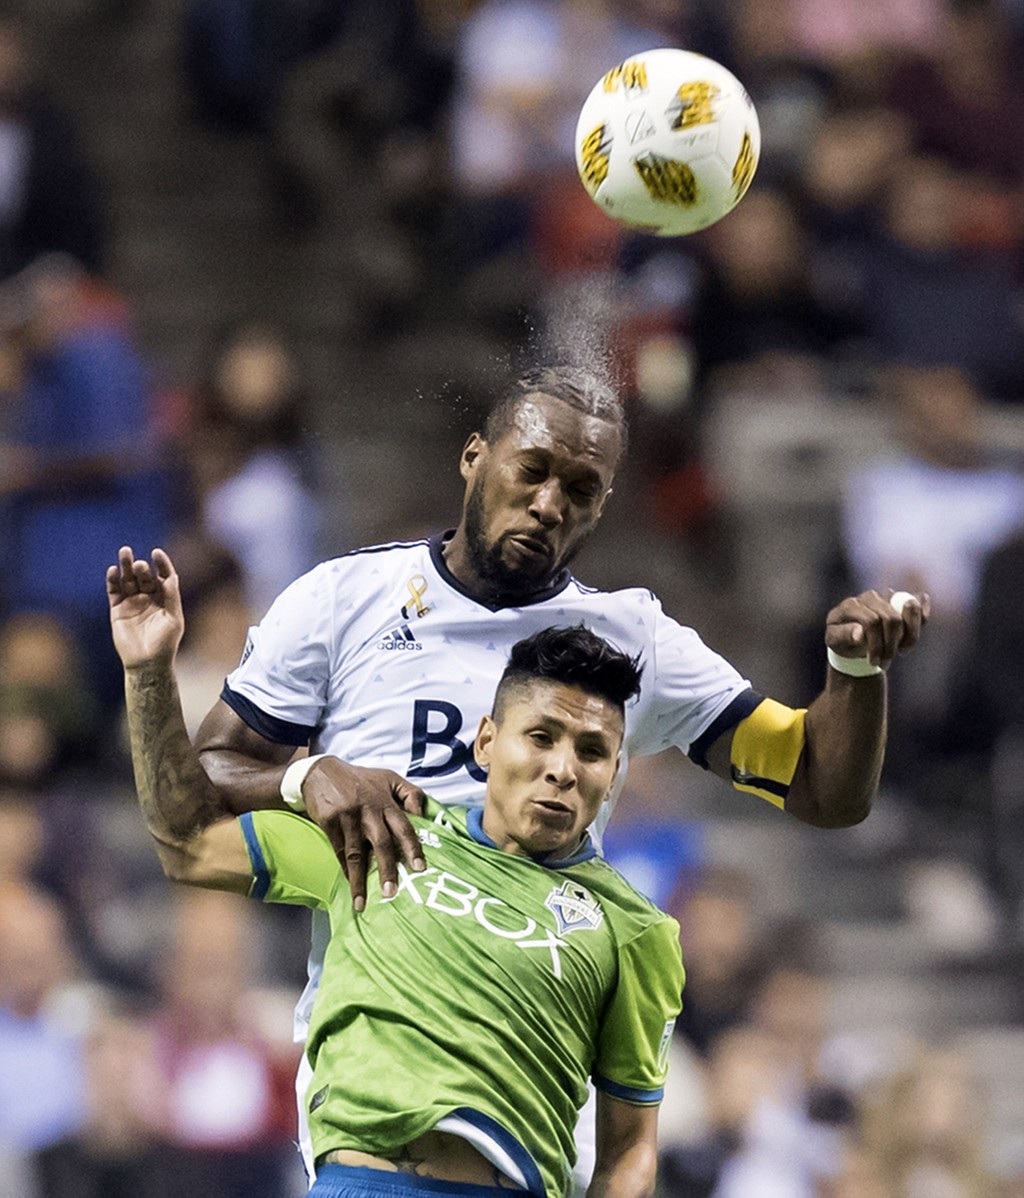 Vancouver Whitecaps' Kendall Waston, back, heads the ball behind Seattle Sounders' Raul Ruidiaz during the first half of an MLS soccer match, Saturday